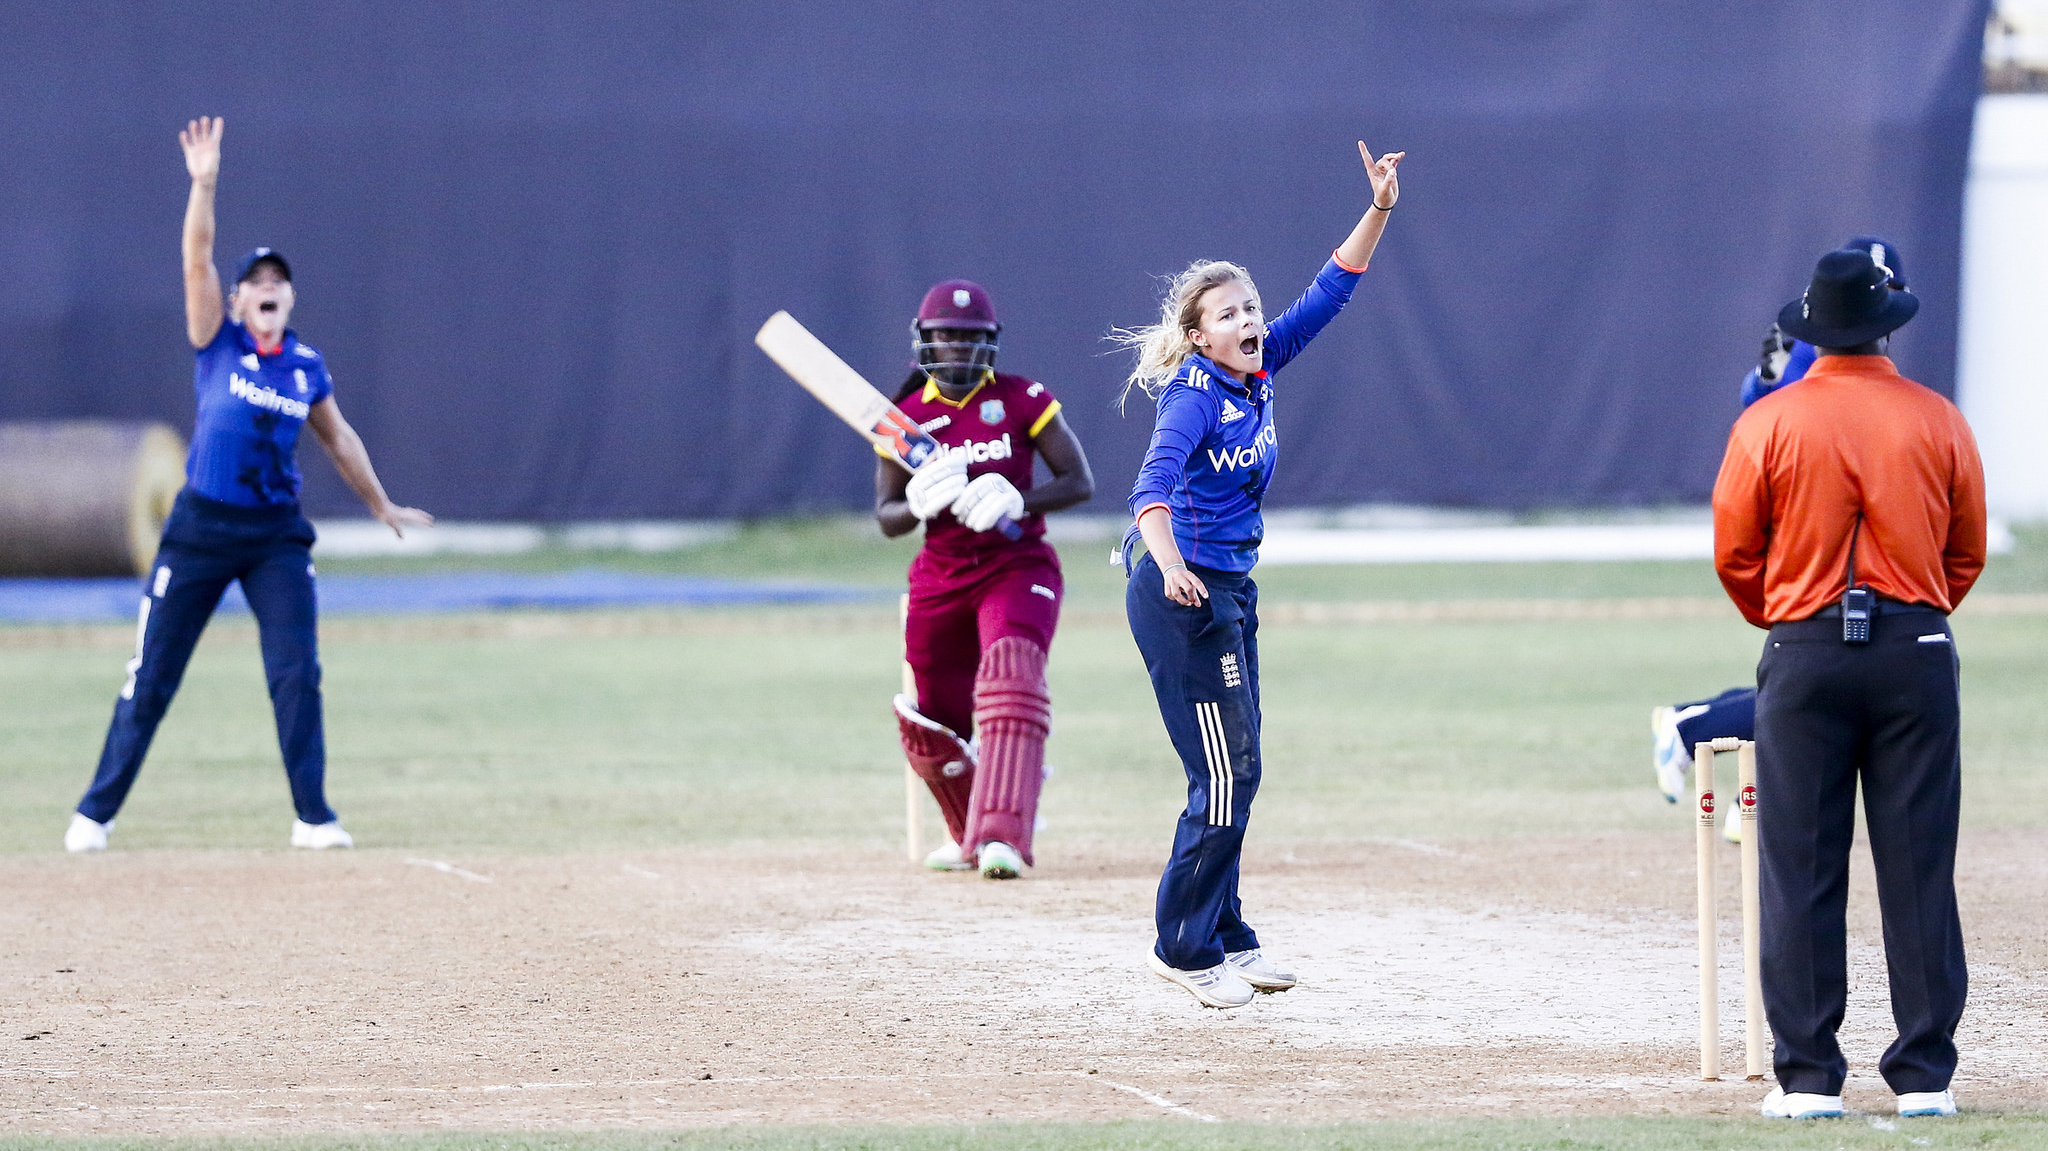 wi vs eng - photo #44